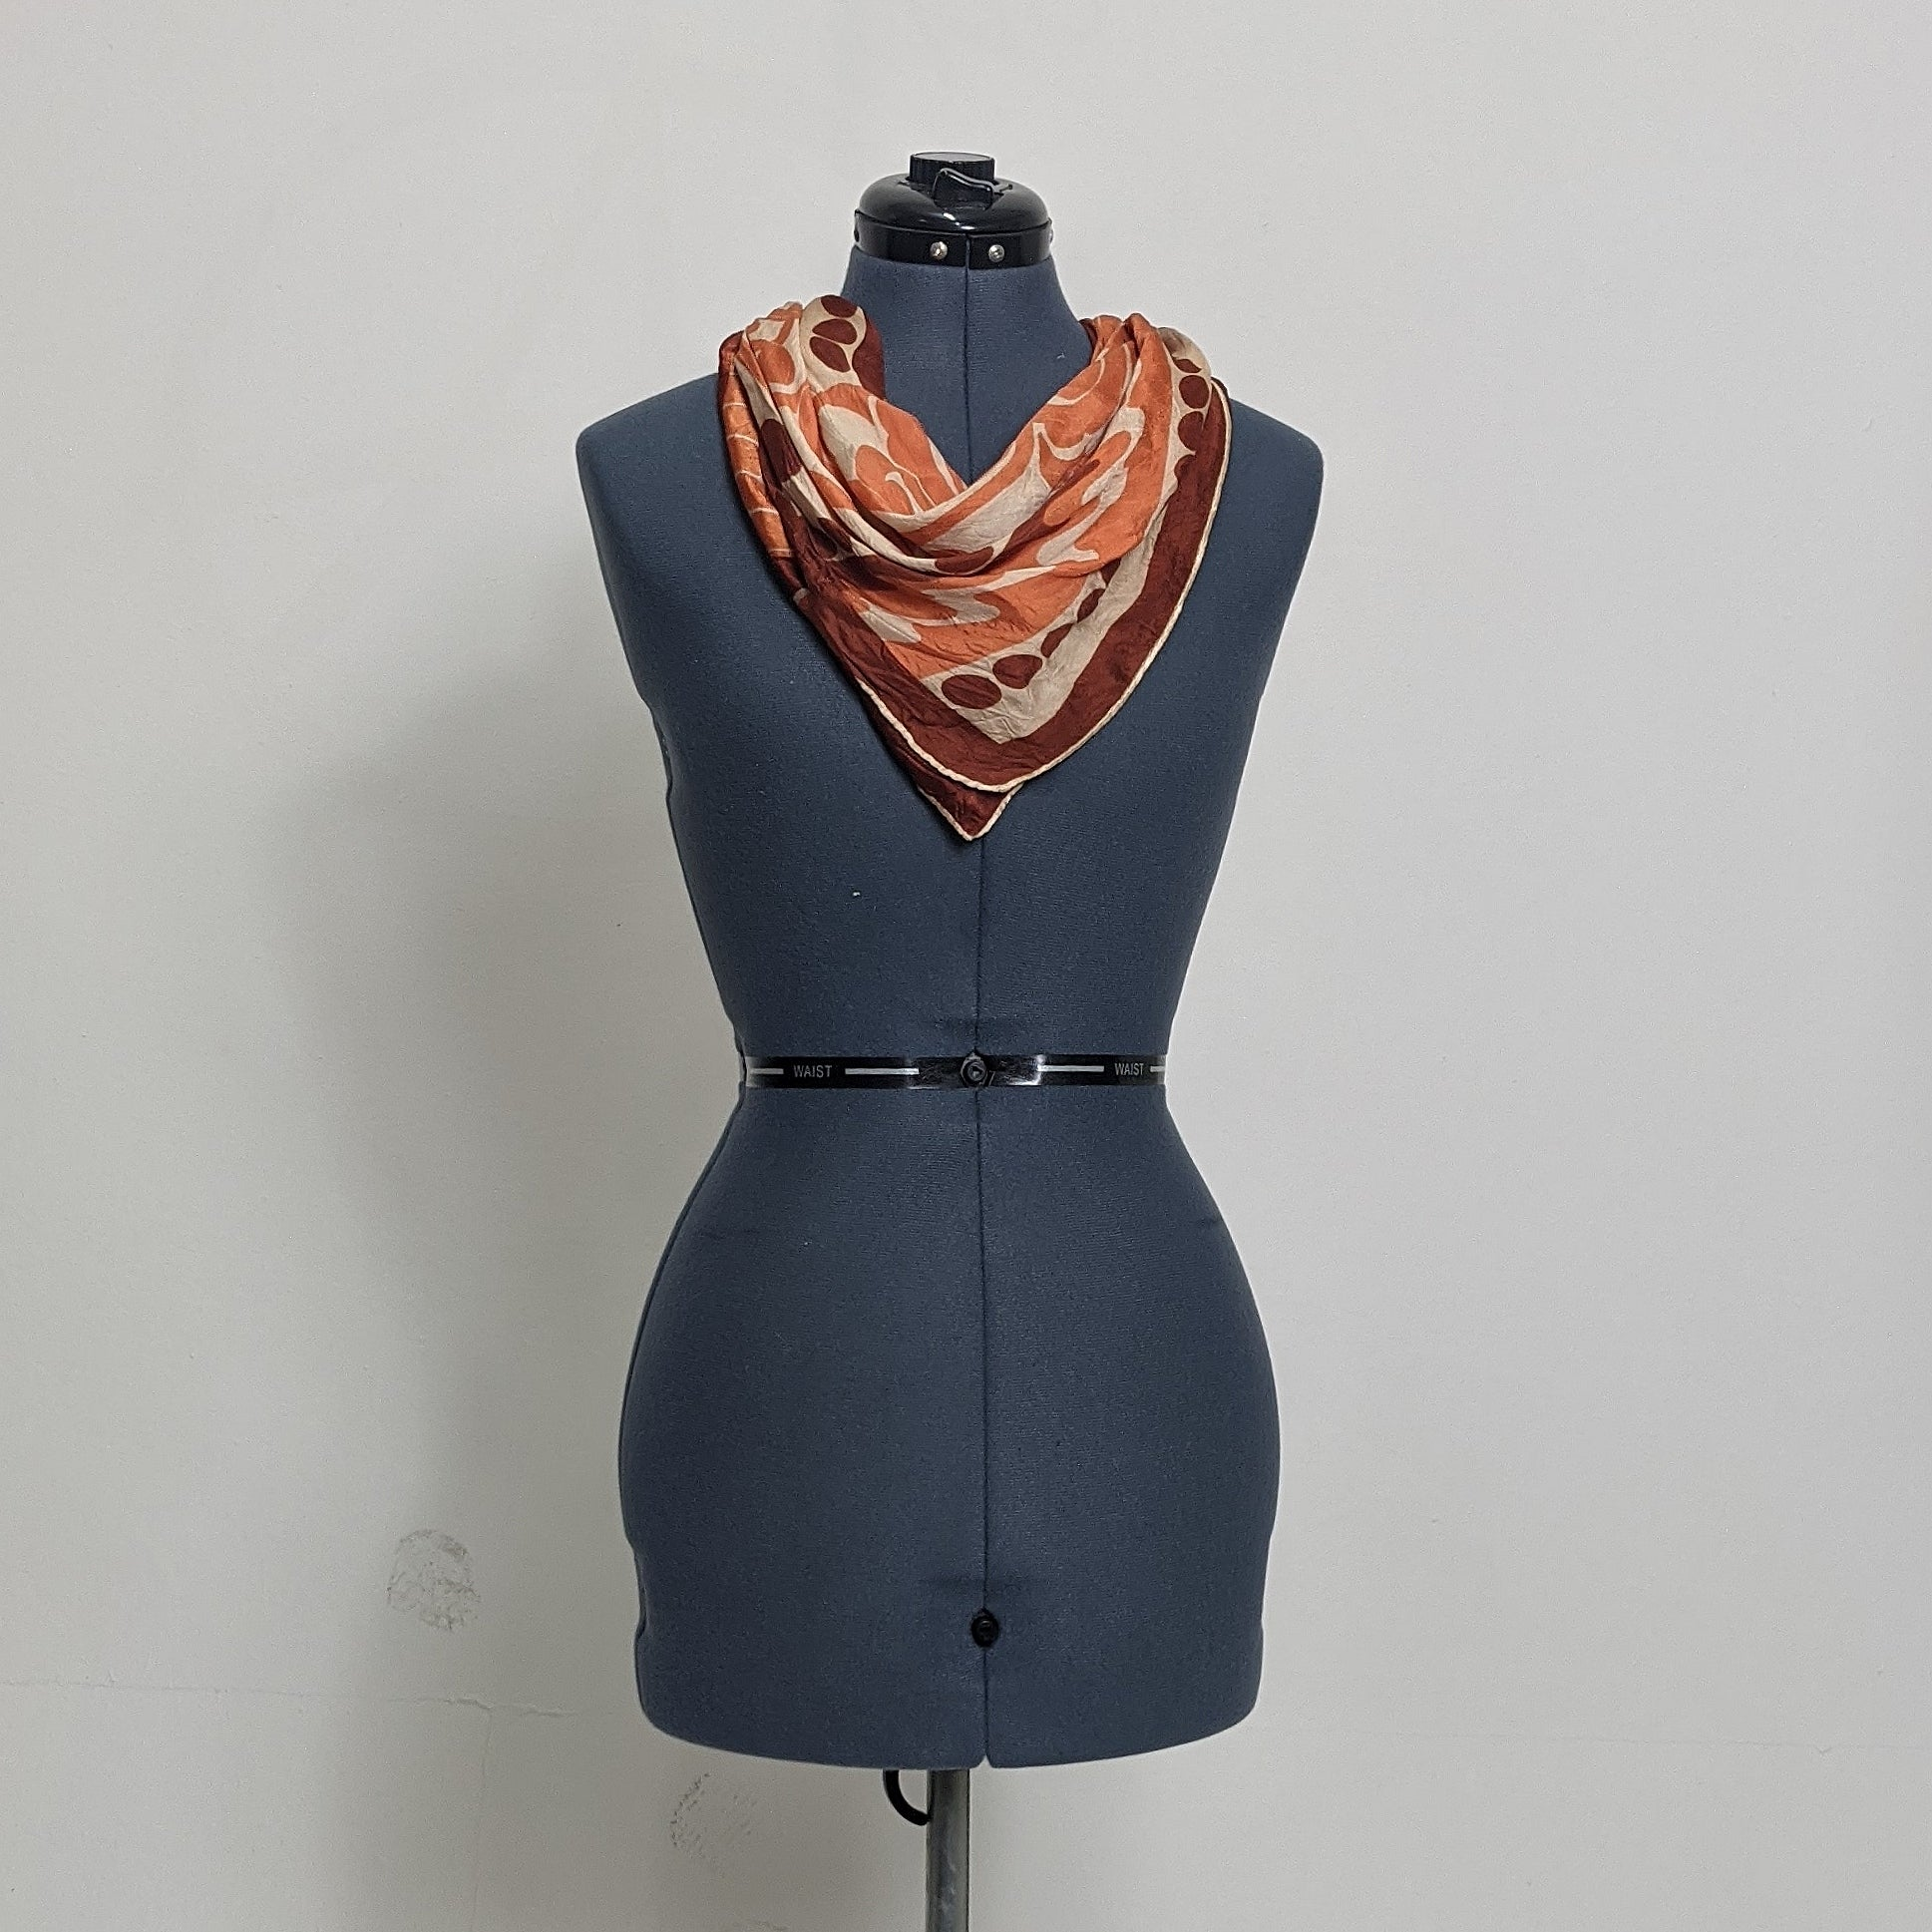 Monochromatic Vintage Patterned Satin Scarf